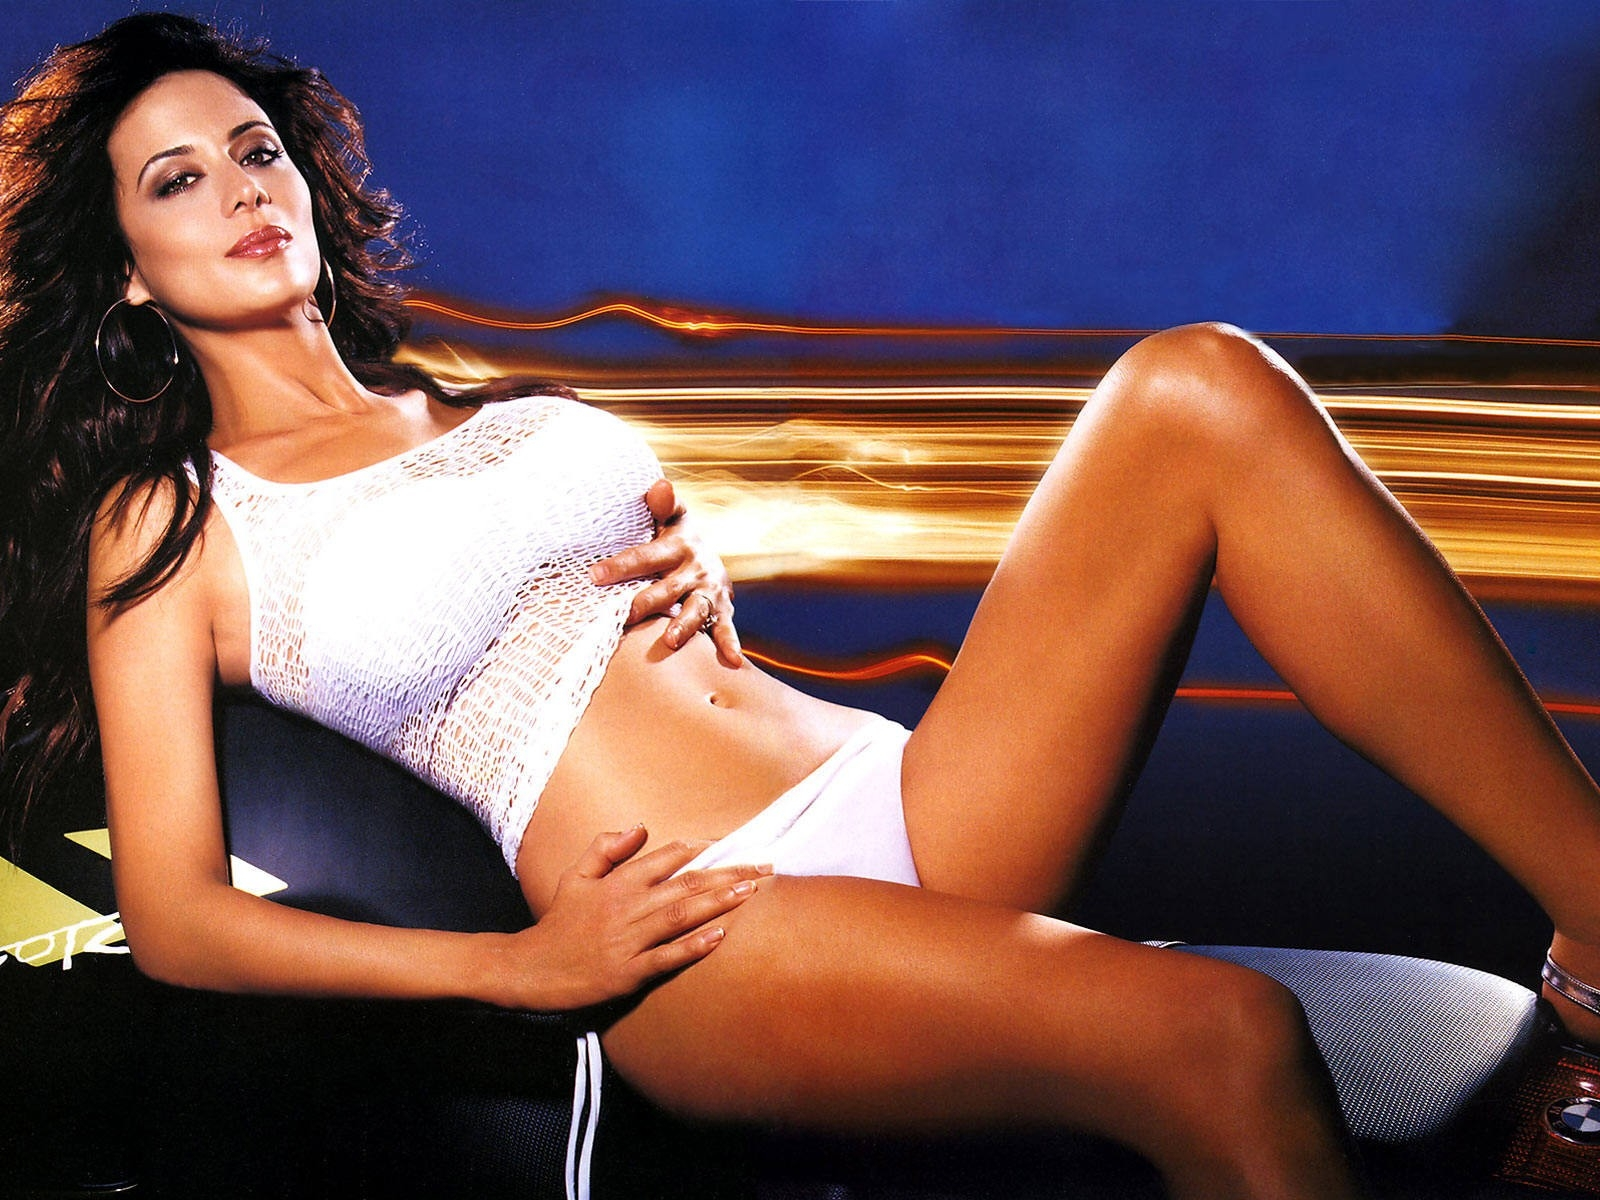 Wallpaper di Catherine Bell in sexy lingerie bianca